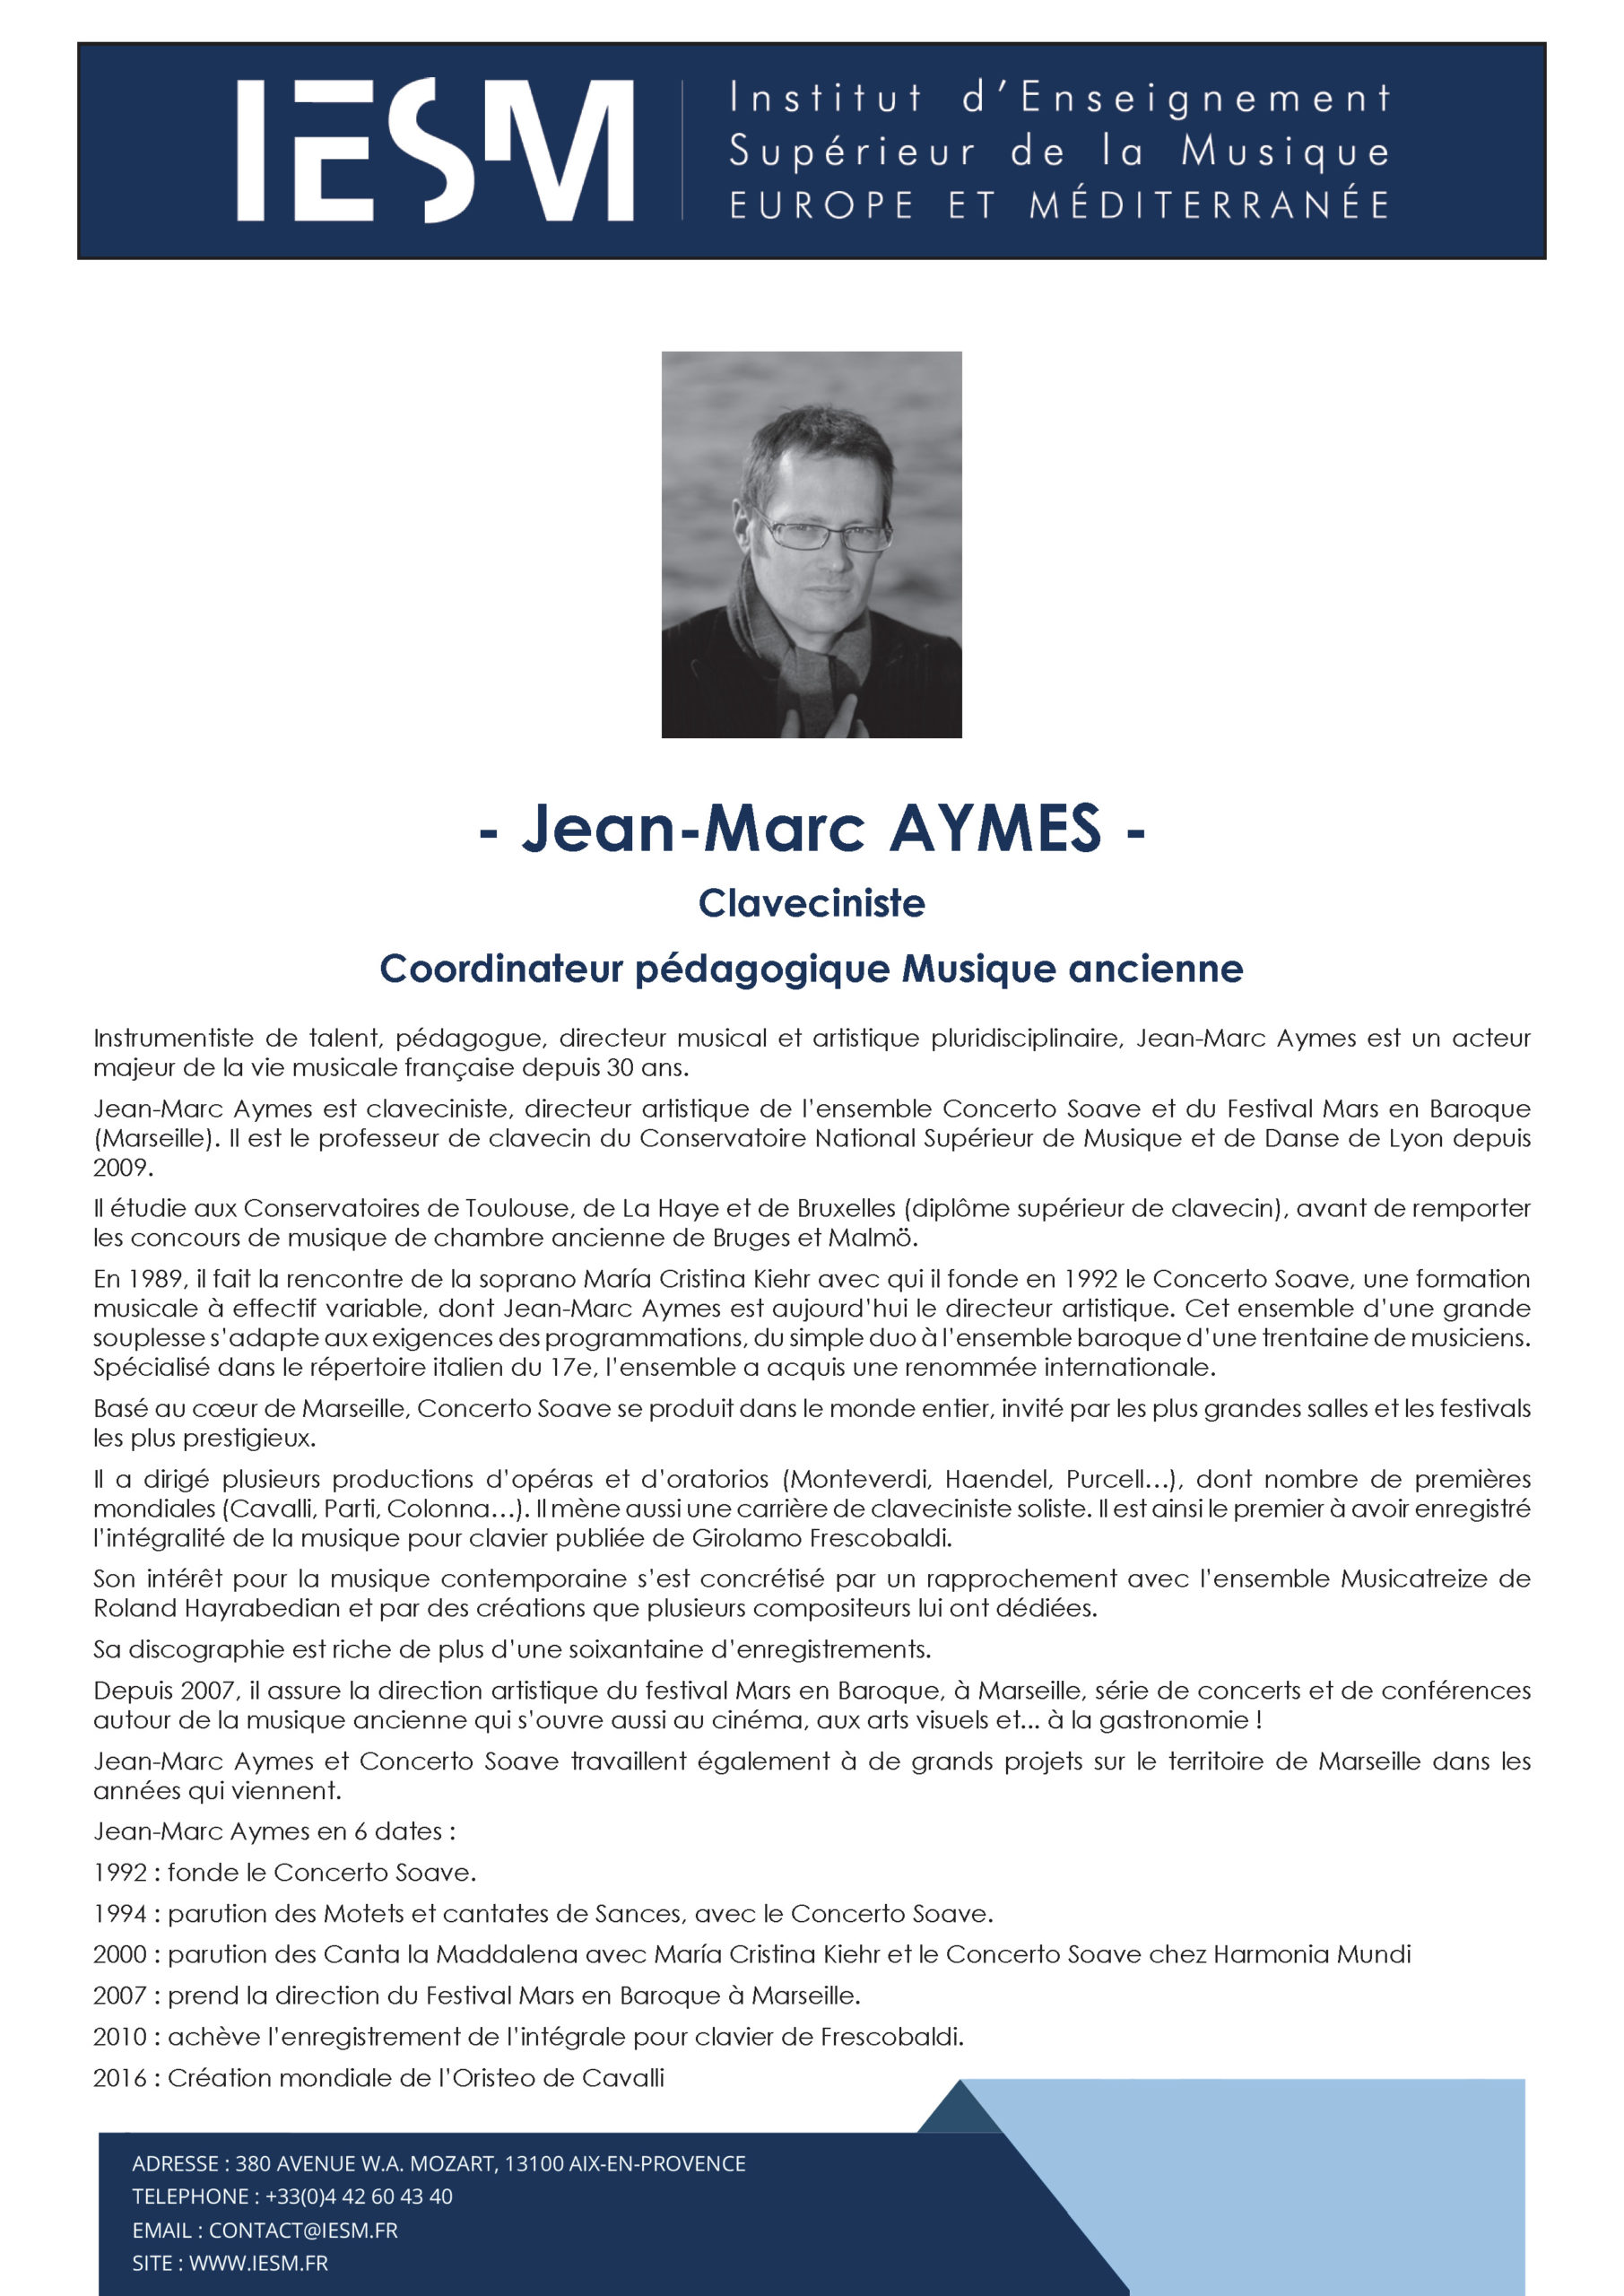 AYMES Jean Marc scaled